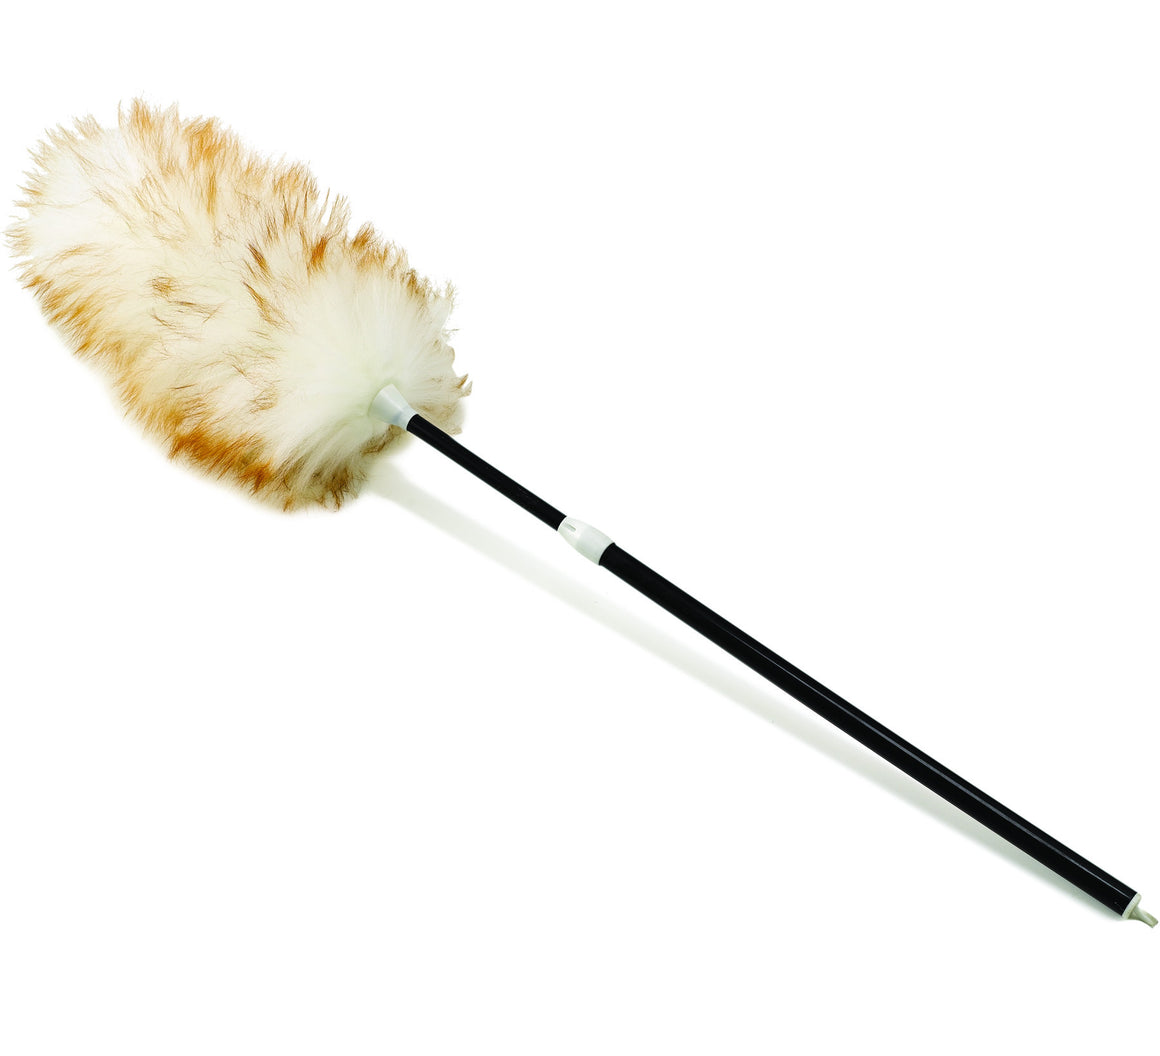 "30-42"" LAMBSWOOL DUSTER W/TELESCOPING PLASTIC HDL"